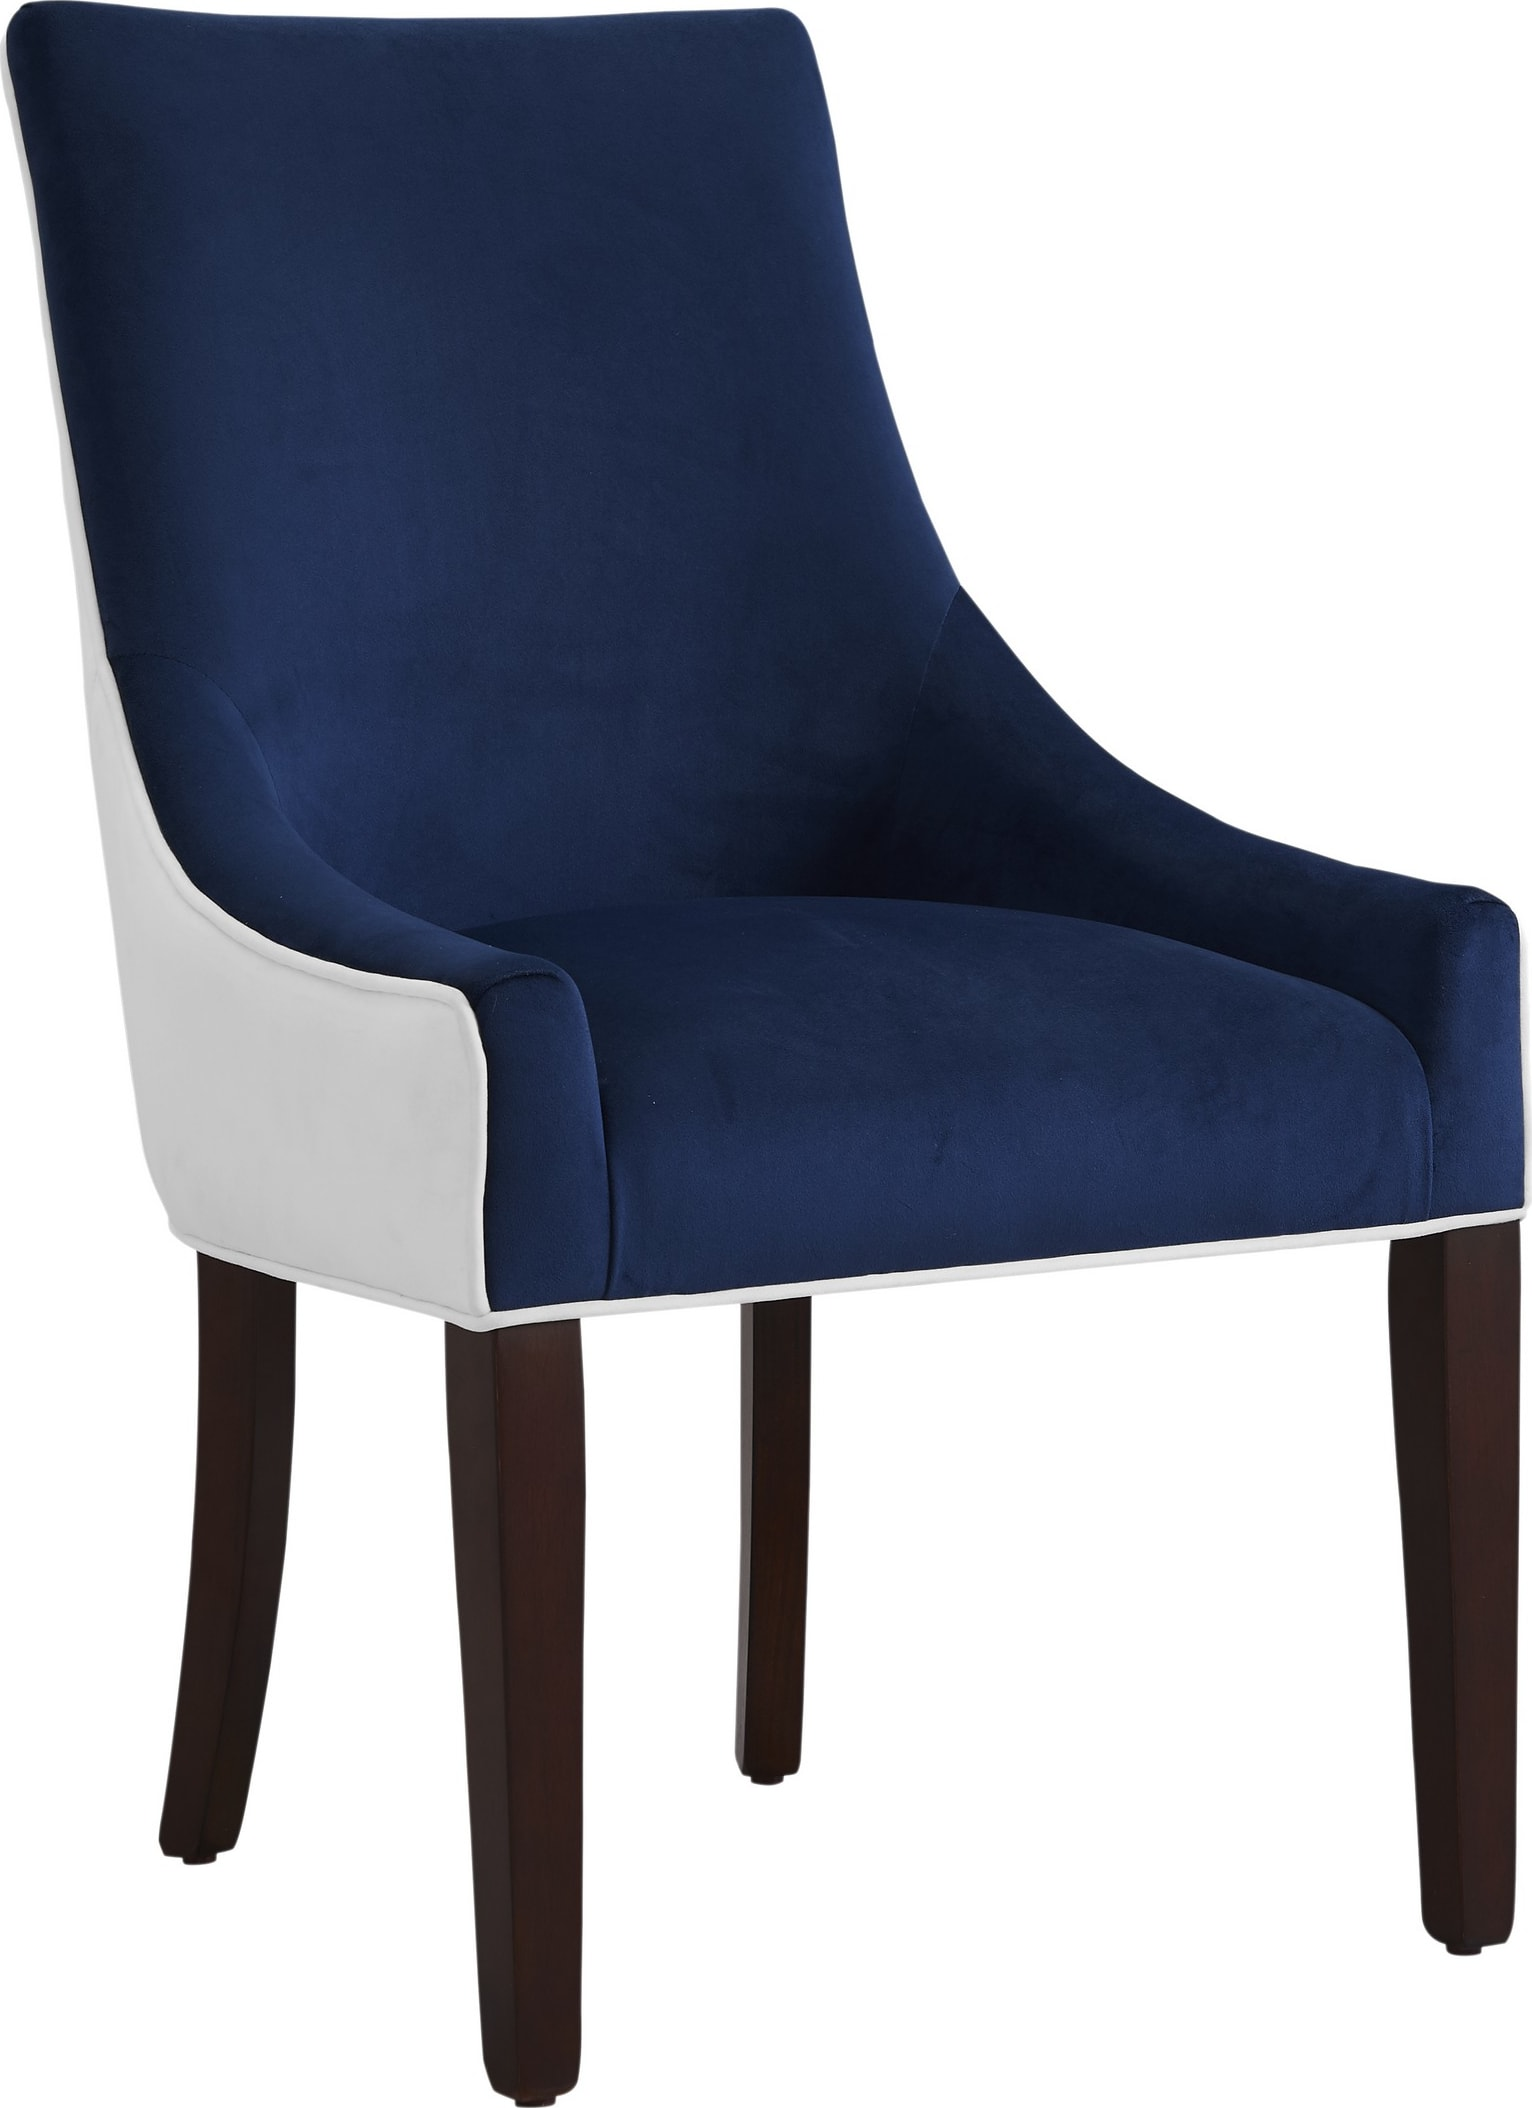 Picture of: Comfort Pointe Jolie Navy Blue Upholstered Dining Chair 8033 10 Goedekers Com